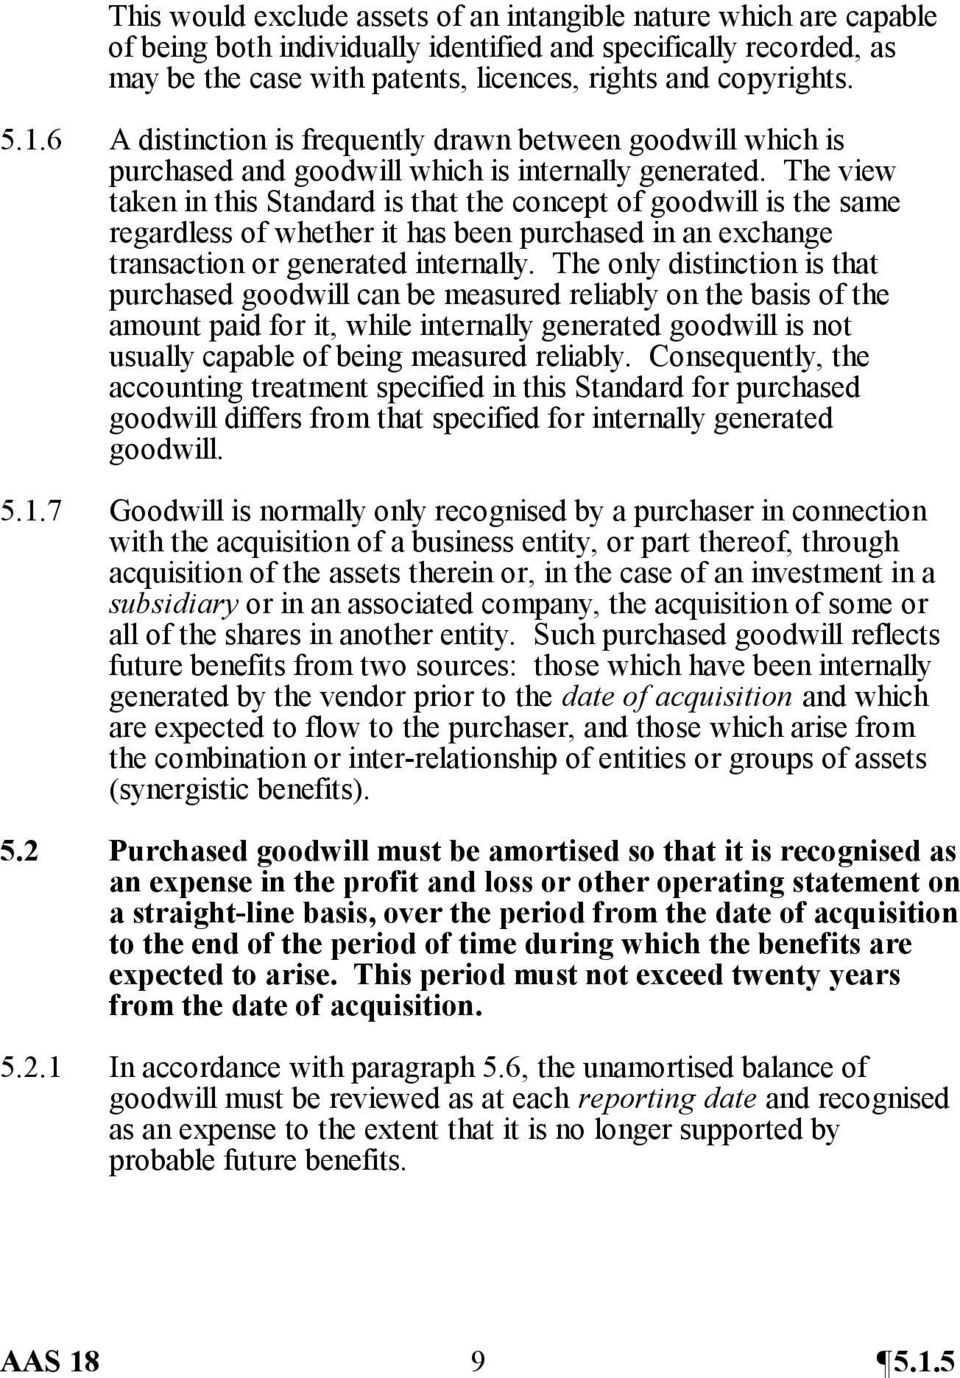 The view taken in this Standard is that the concept of goodwill is the same regardless of whether it has been purchased in an exchange transaction or generated internally.